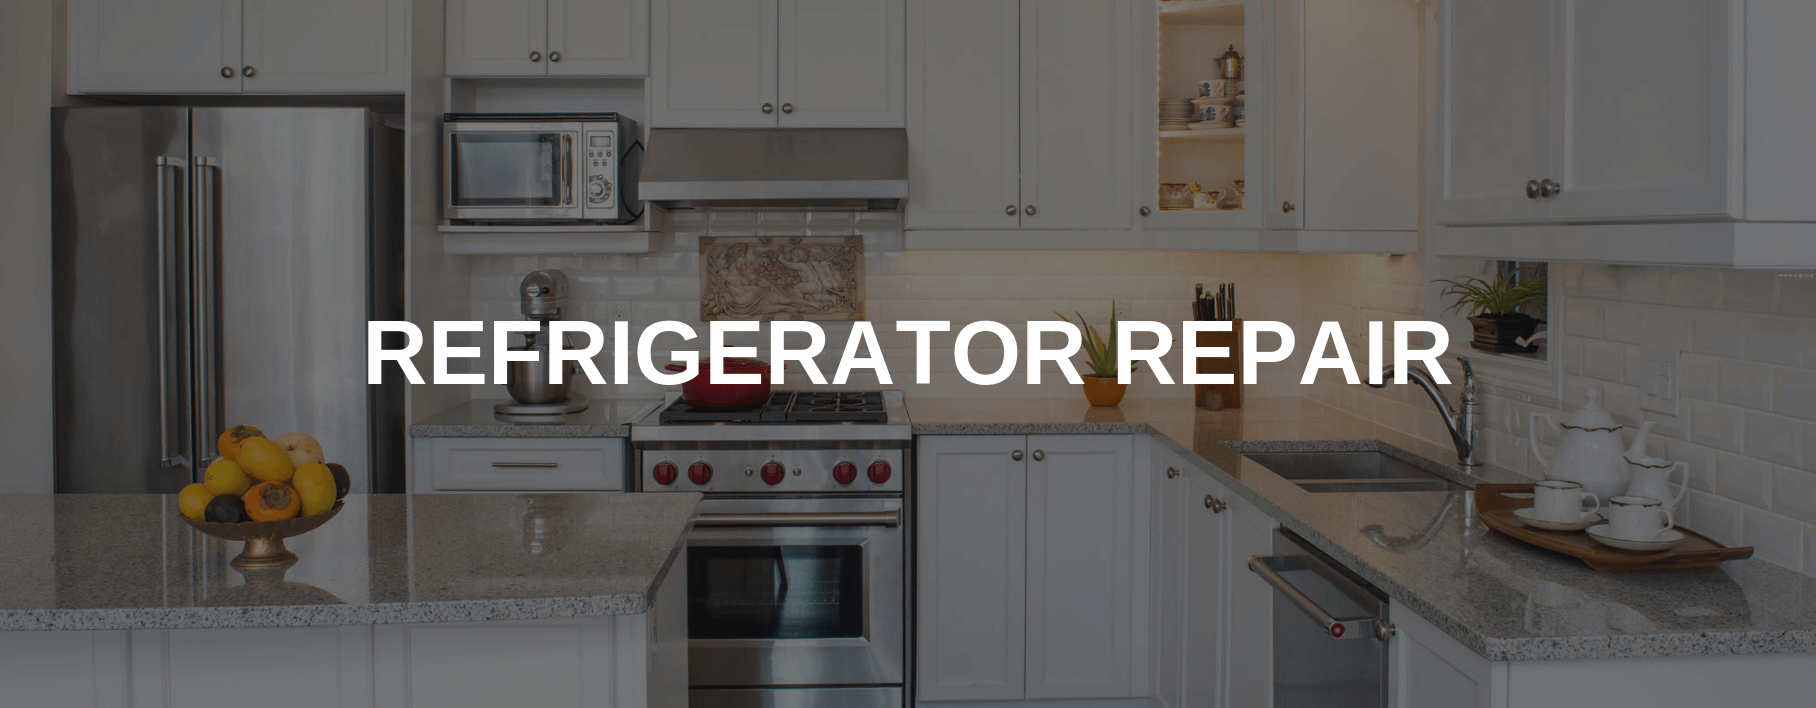 refrigerator repair Cheshire